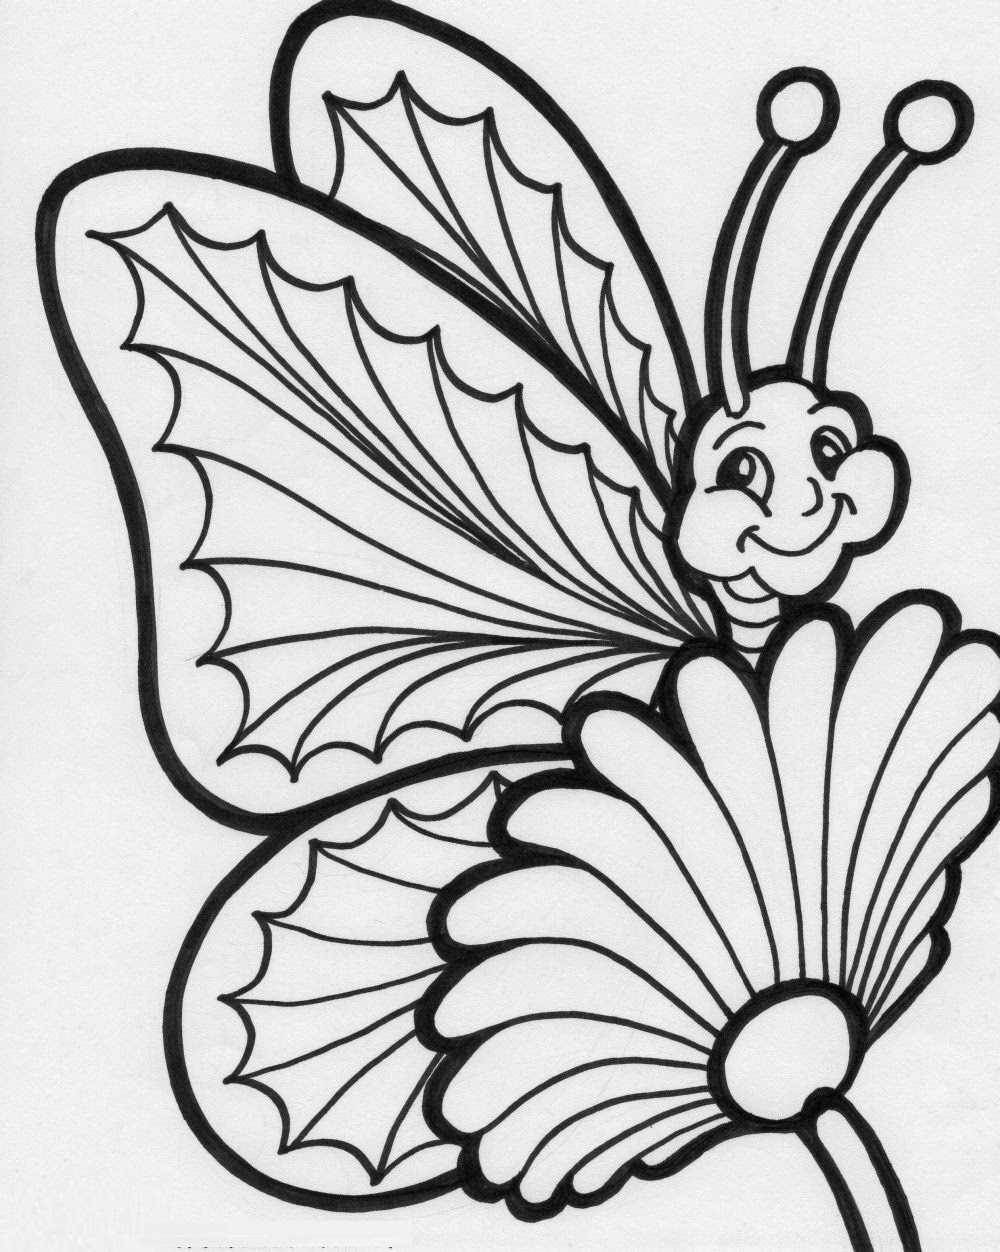 coloring pages of roses and butterflies free printable heart colouring pages coloringsnet pages roses and butterflies coloring of